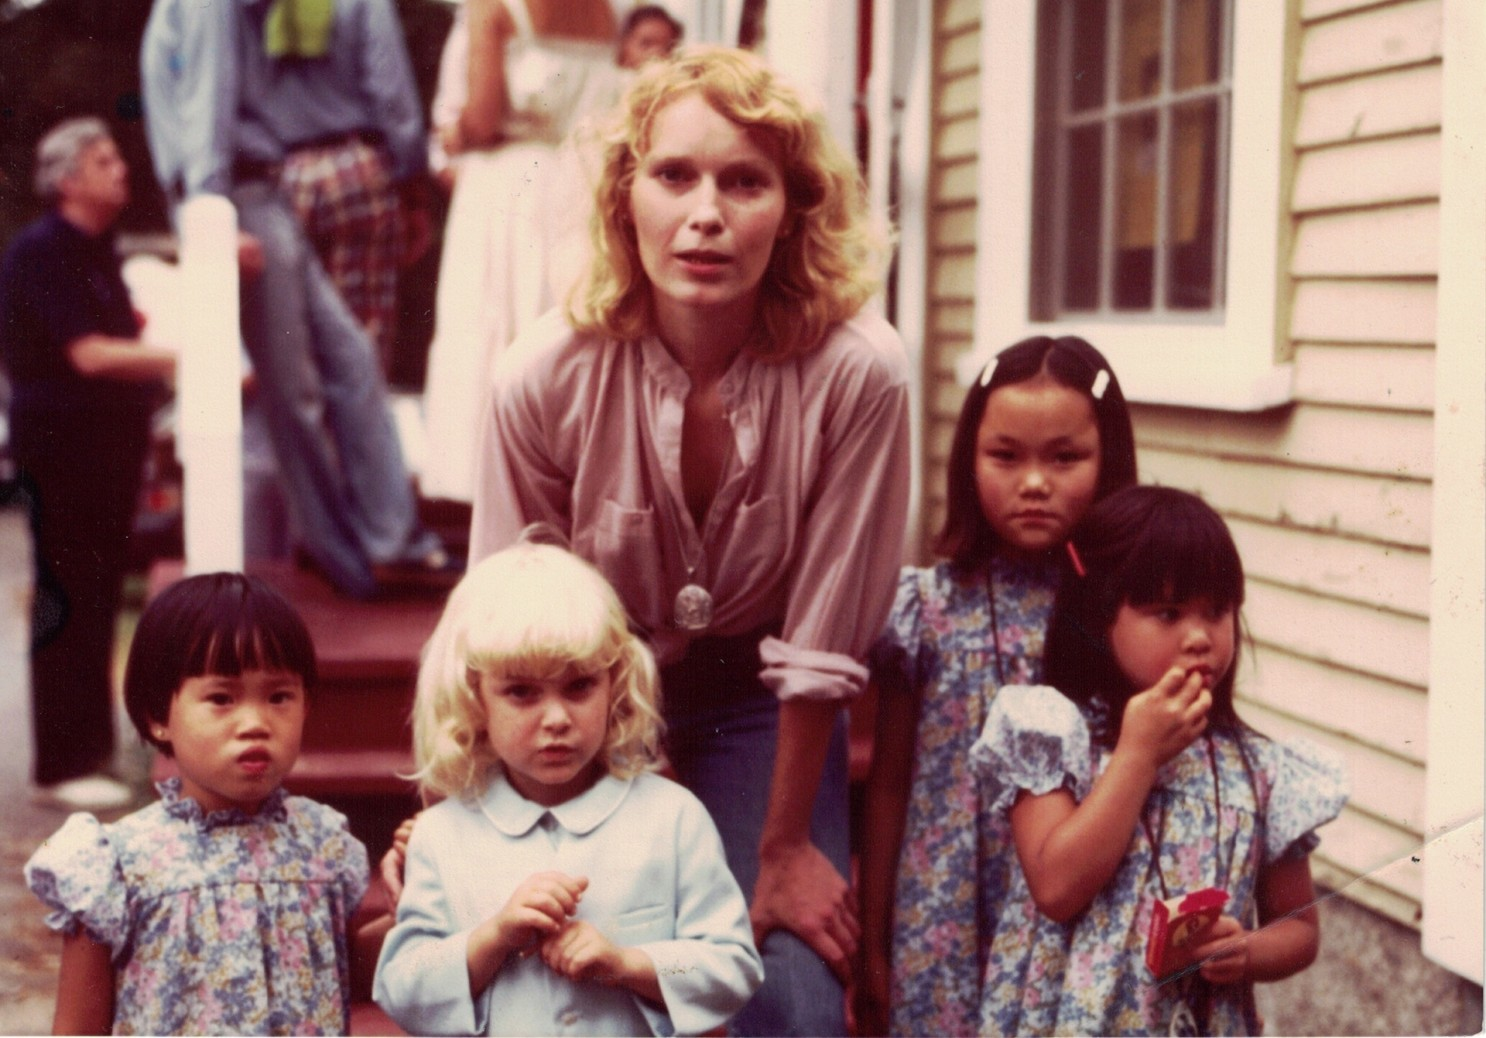 Mia Farrow reacts to vicious rumors about her three adopted children deaths!!!